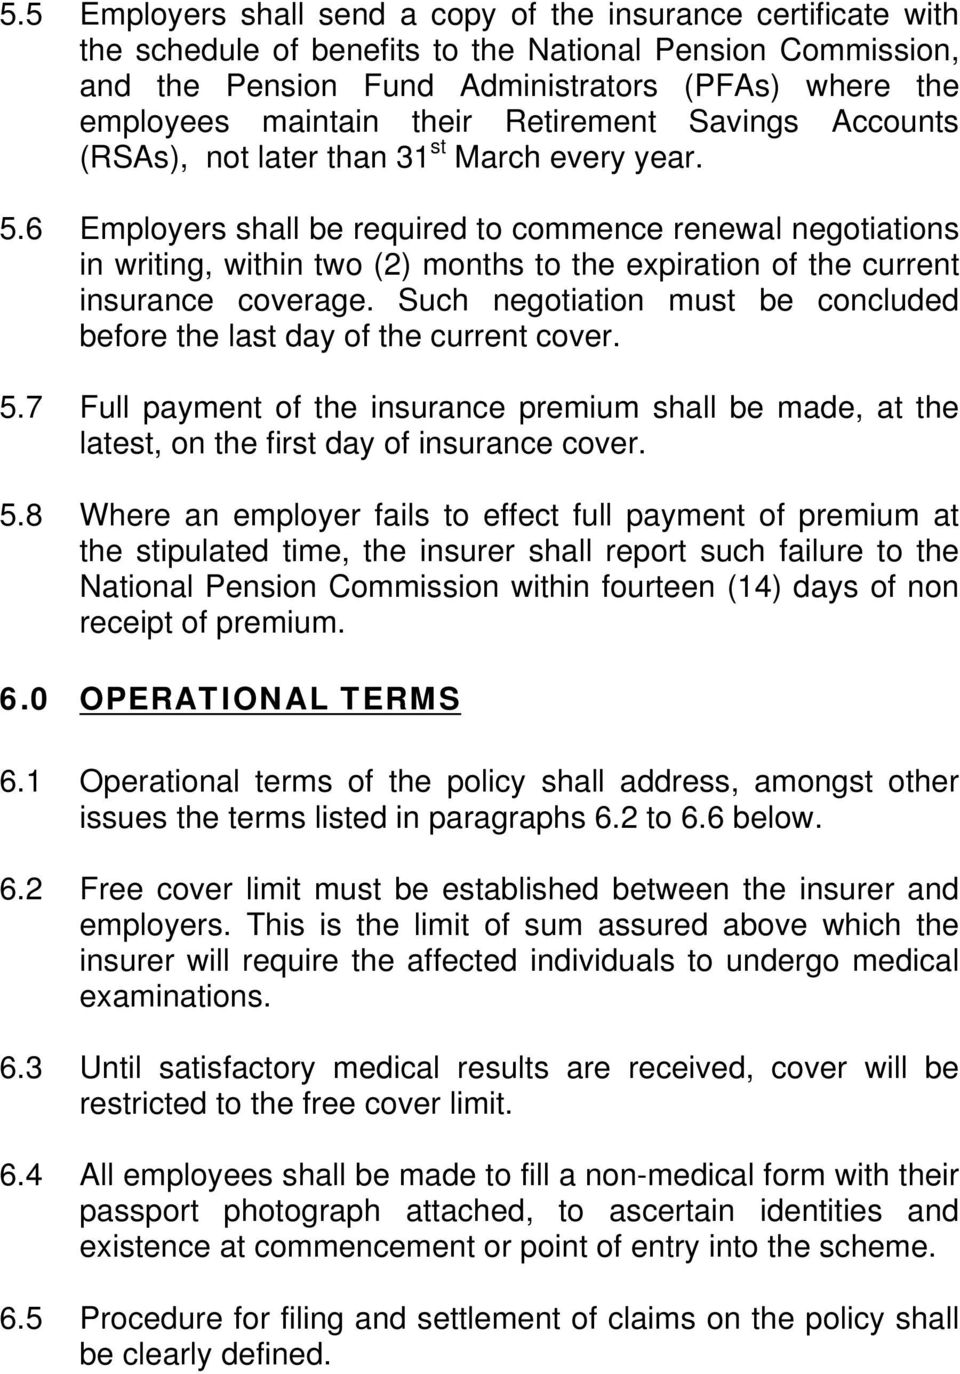 6 Employers shall be required to commence renewal negotiations in writing, within two (2) months to the expiration of the current insurance coverage.